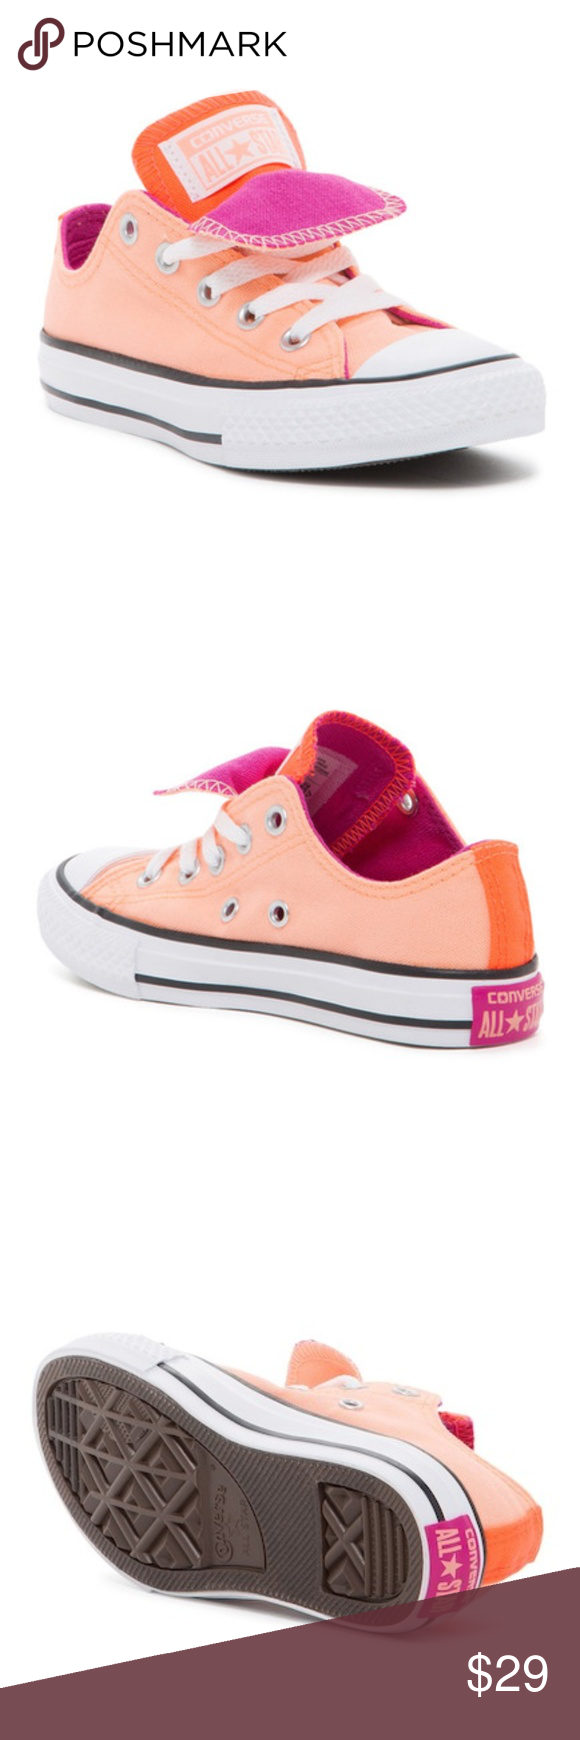 32c3ae2737df CONVERSE Chuck Taylor All Star Low Top Sunset Glow Brand-New